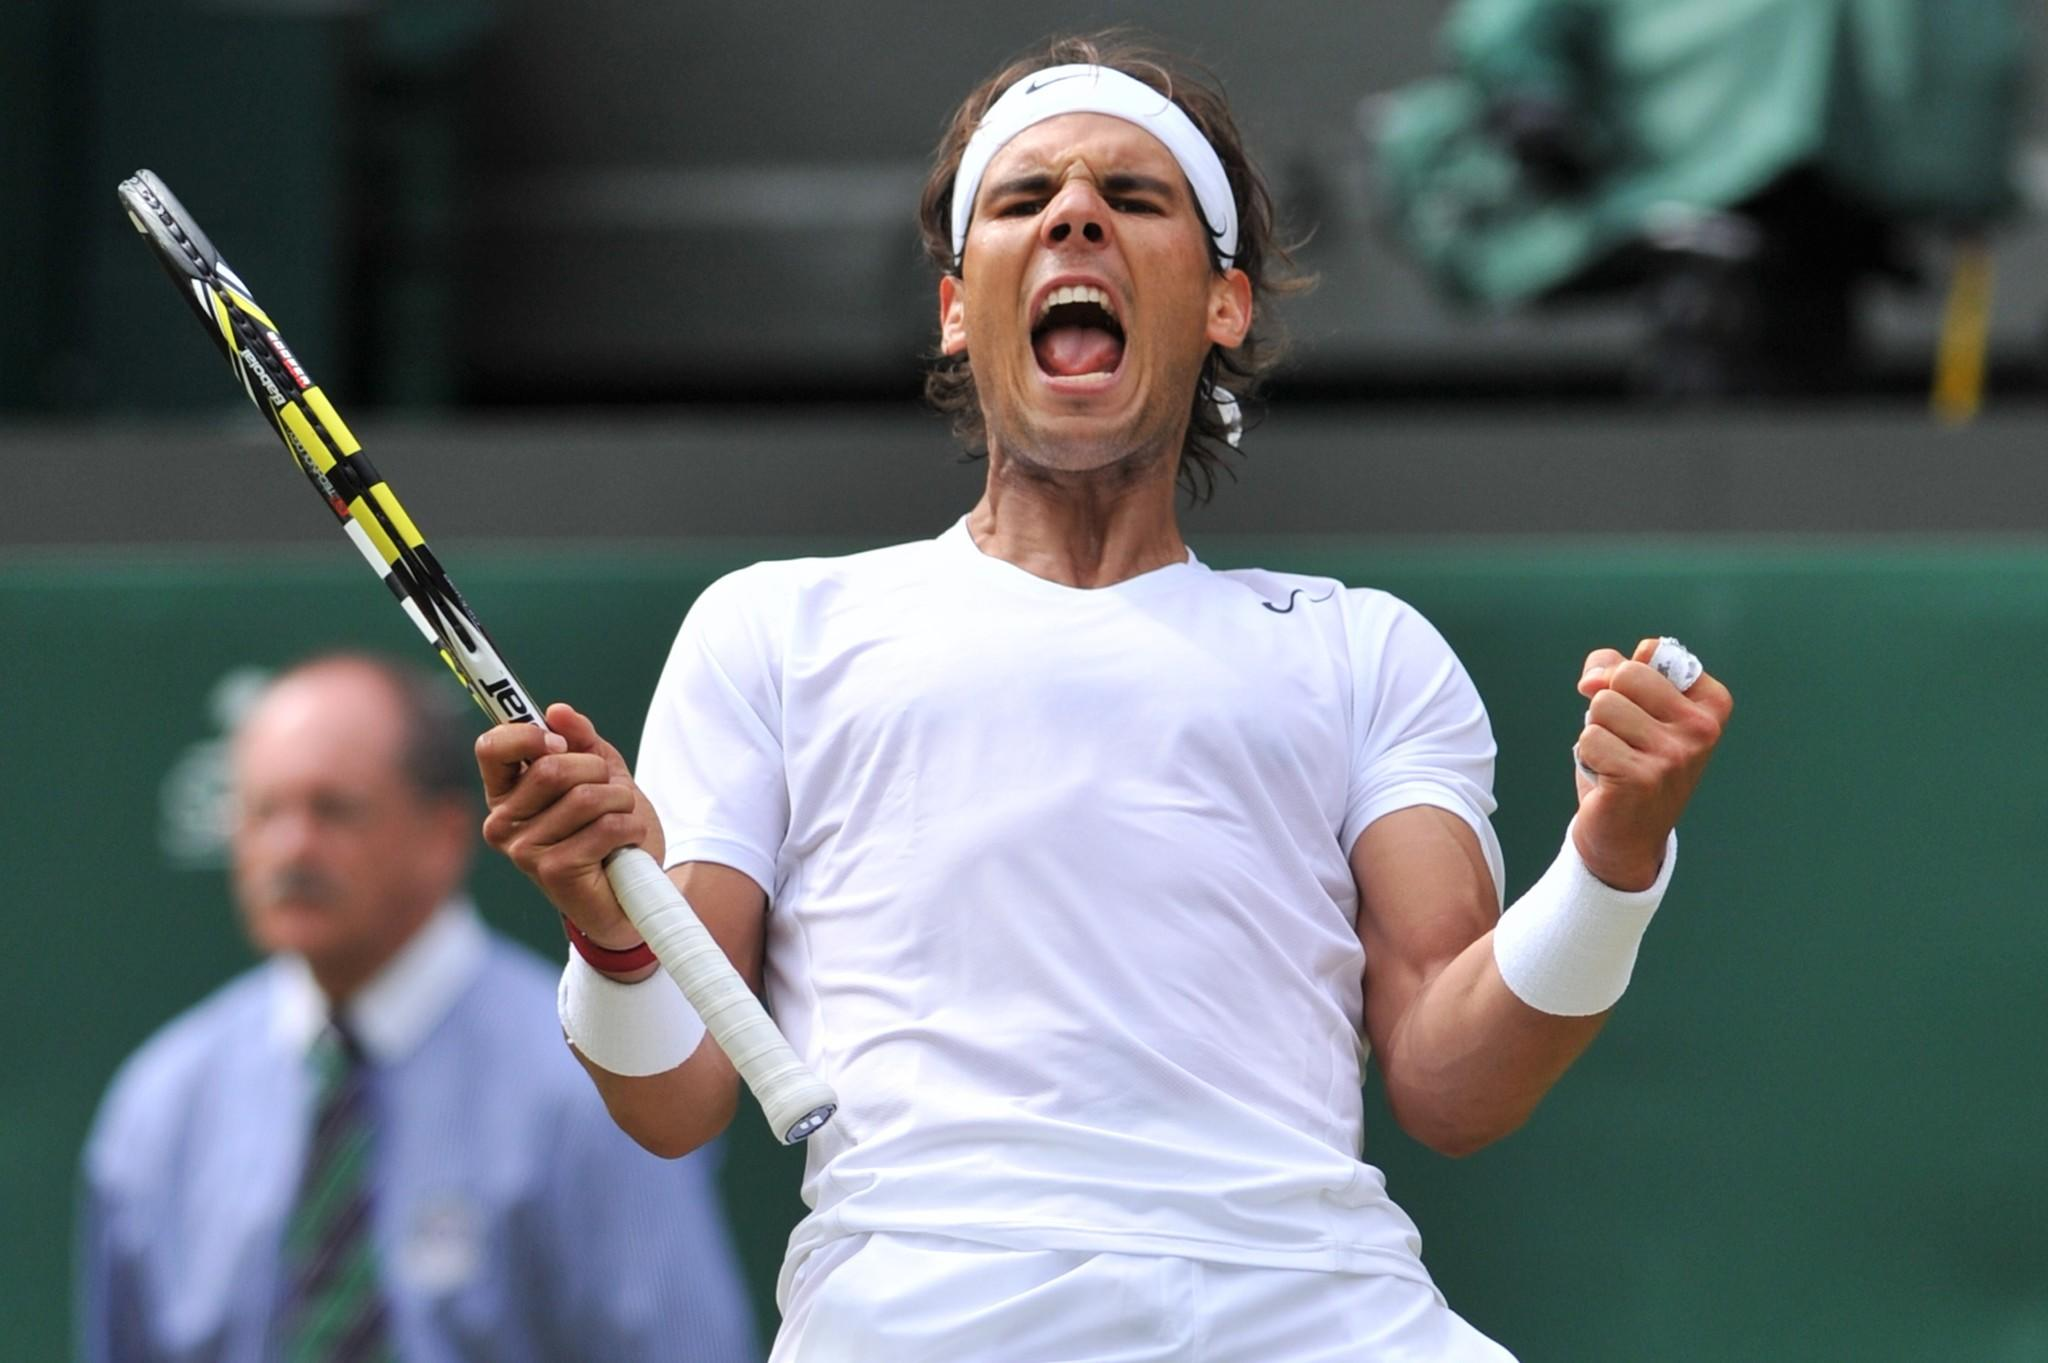 Rafael Nadal celebrates beating Czech Republic's Lukas Rosol.